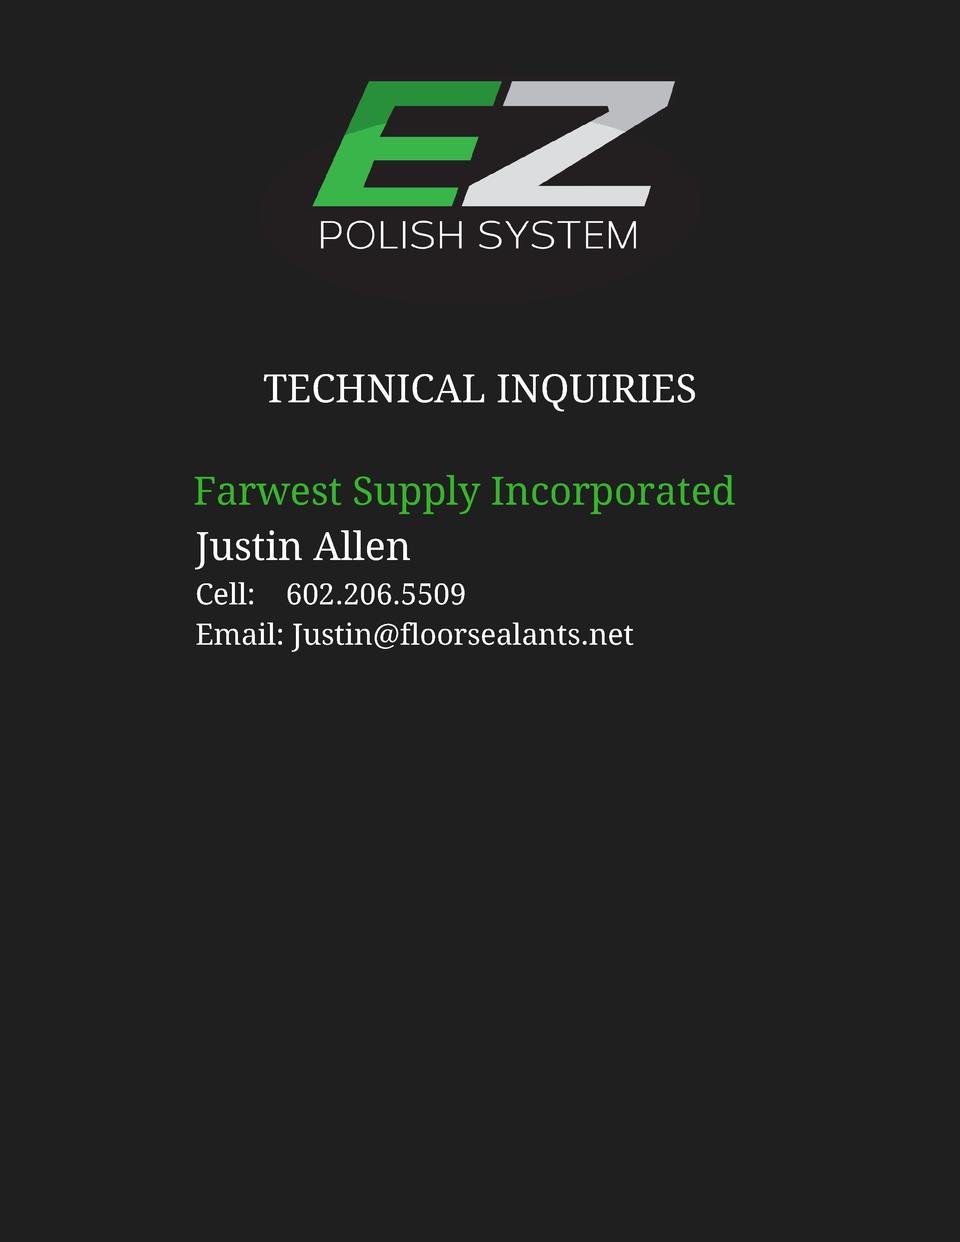 TECHNICAL INQUIRIES Farwest Supply Incorporated Justin Allen Cell       602.206.5509 Email   Justin floorsealants.net